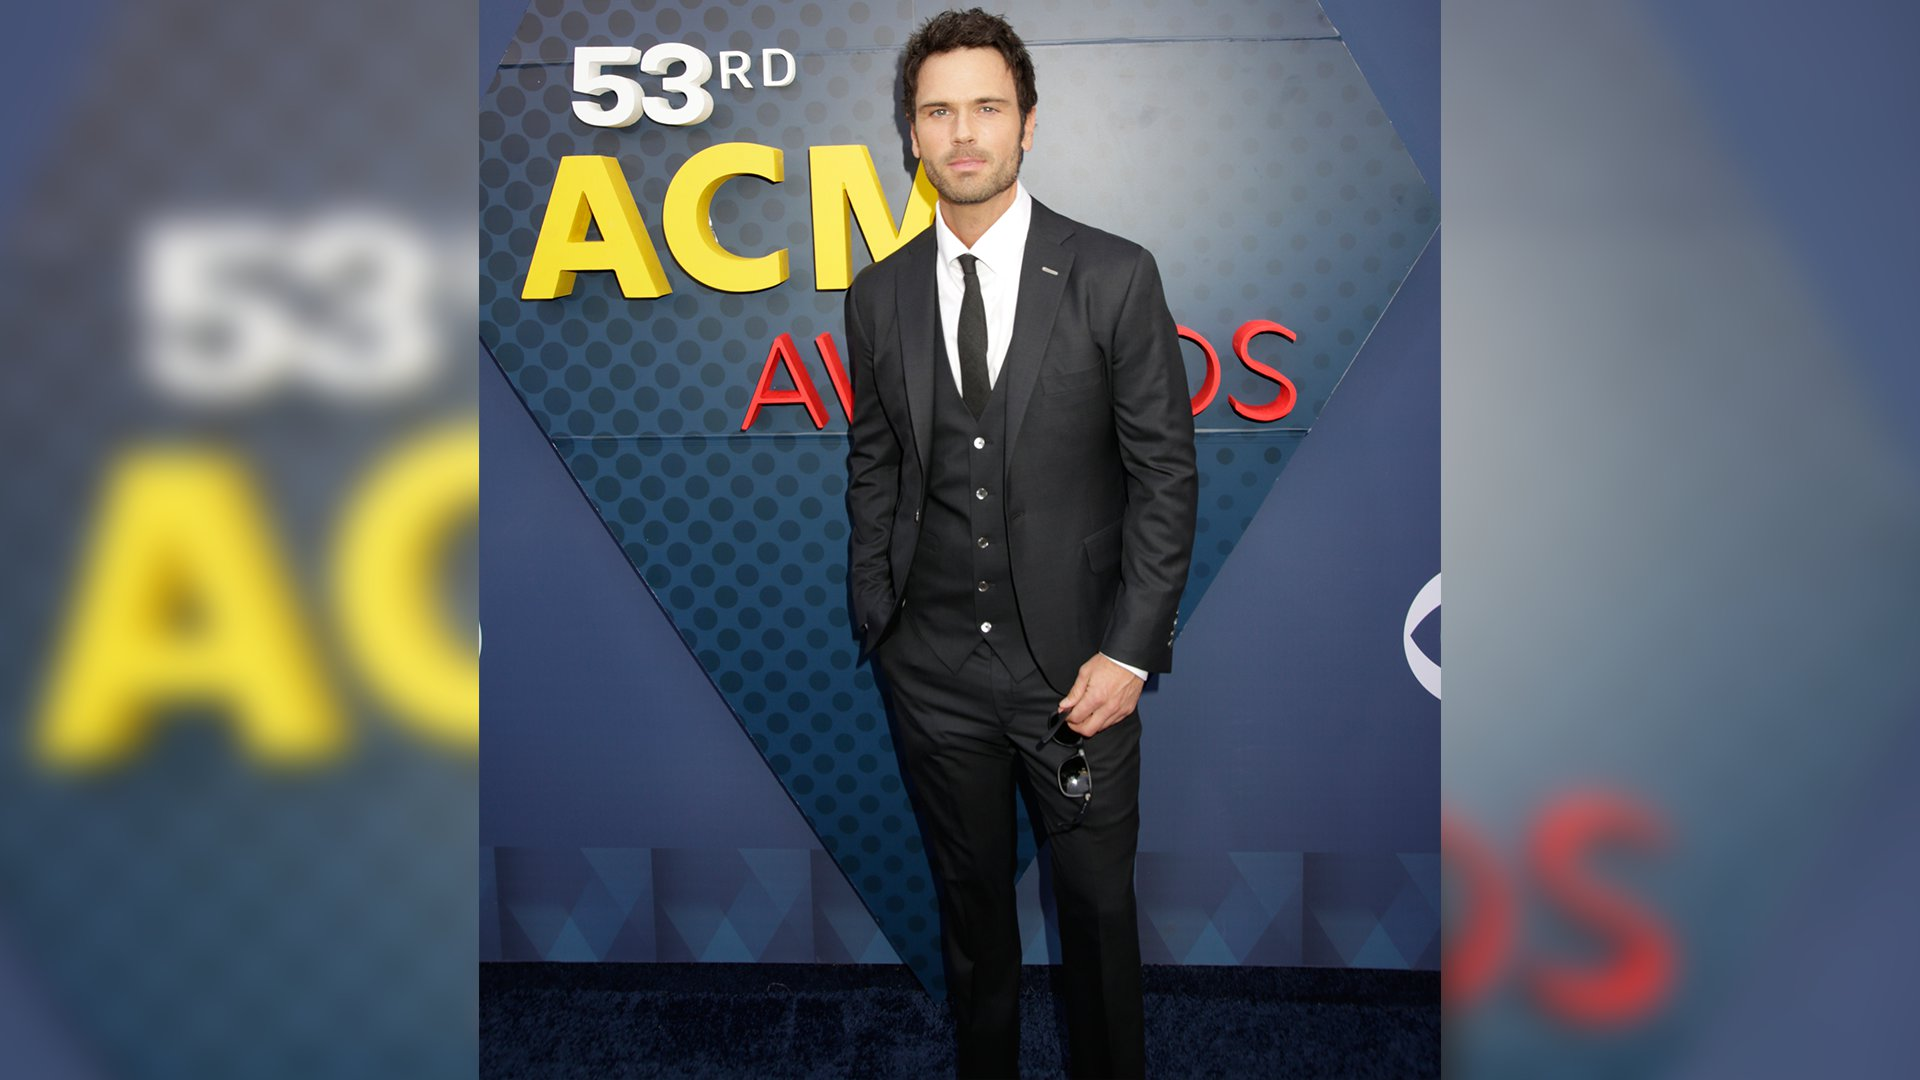 Singer Chuck Wicks looks wicked handsome in a three-piece suit.